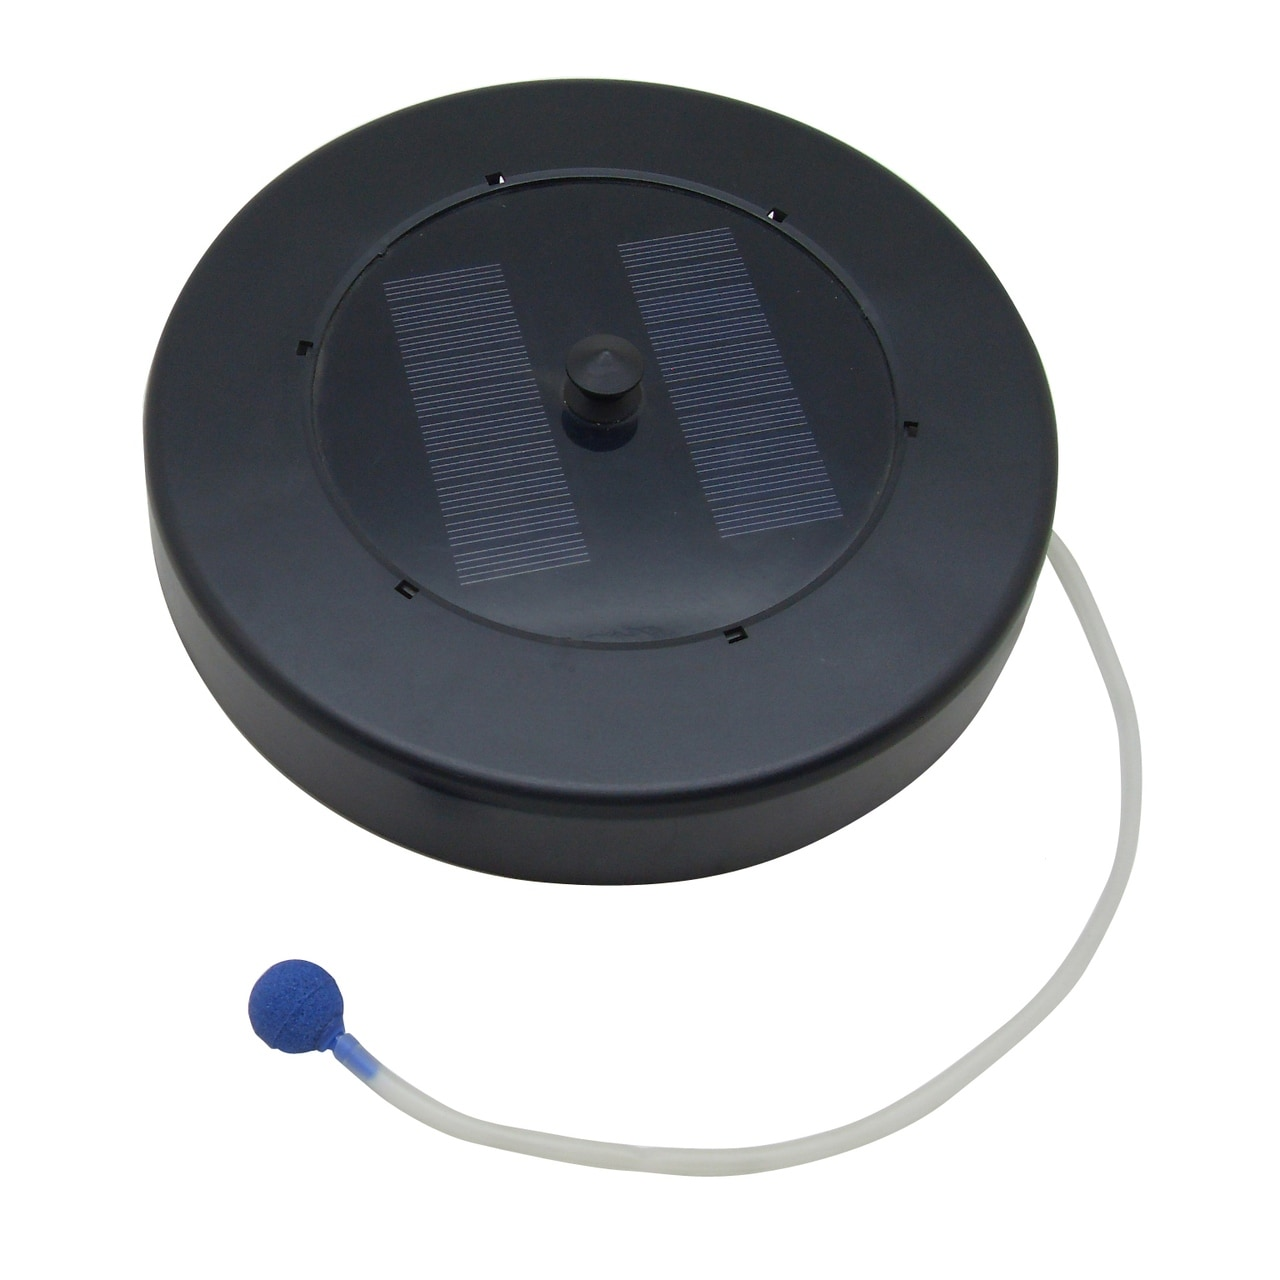 Sunnydaze Solar Floating Pond Oxygenator Oxygen Air Pump with Air Stone - Black - Thumbnail 0